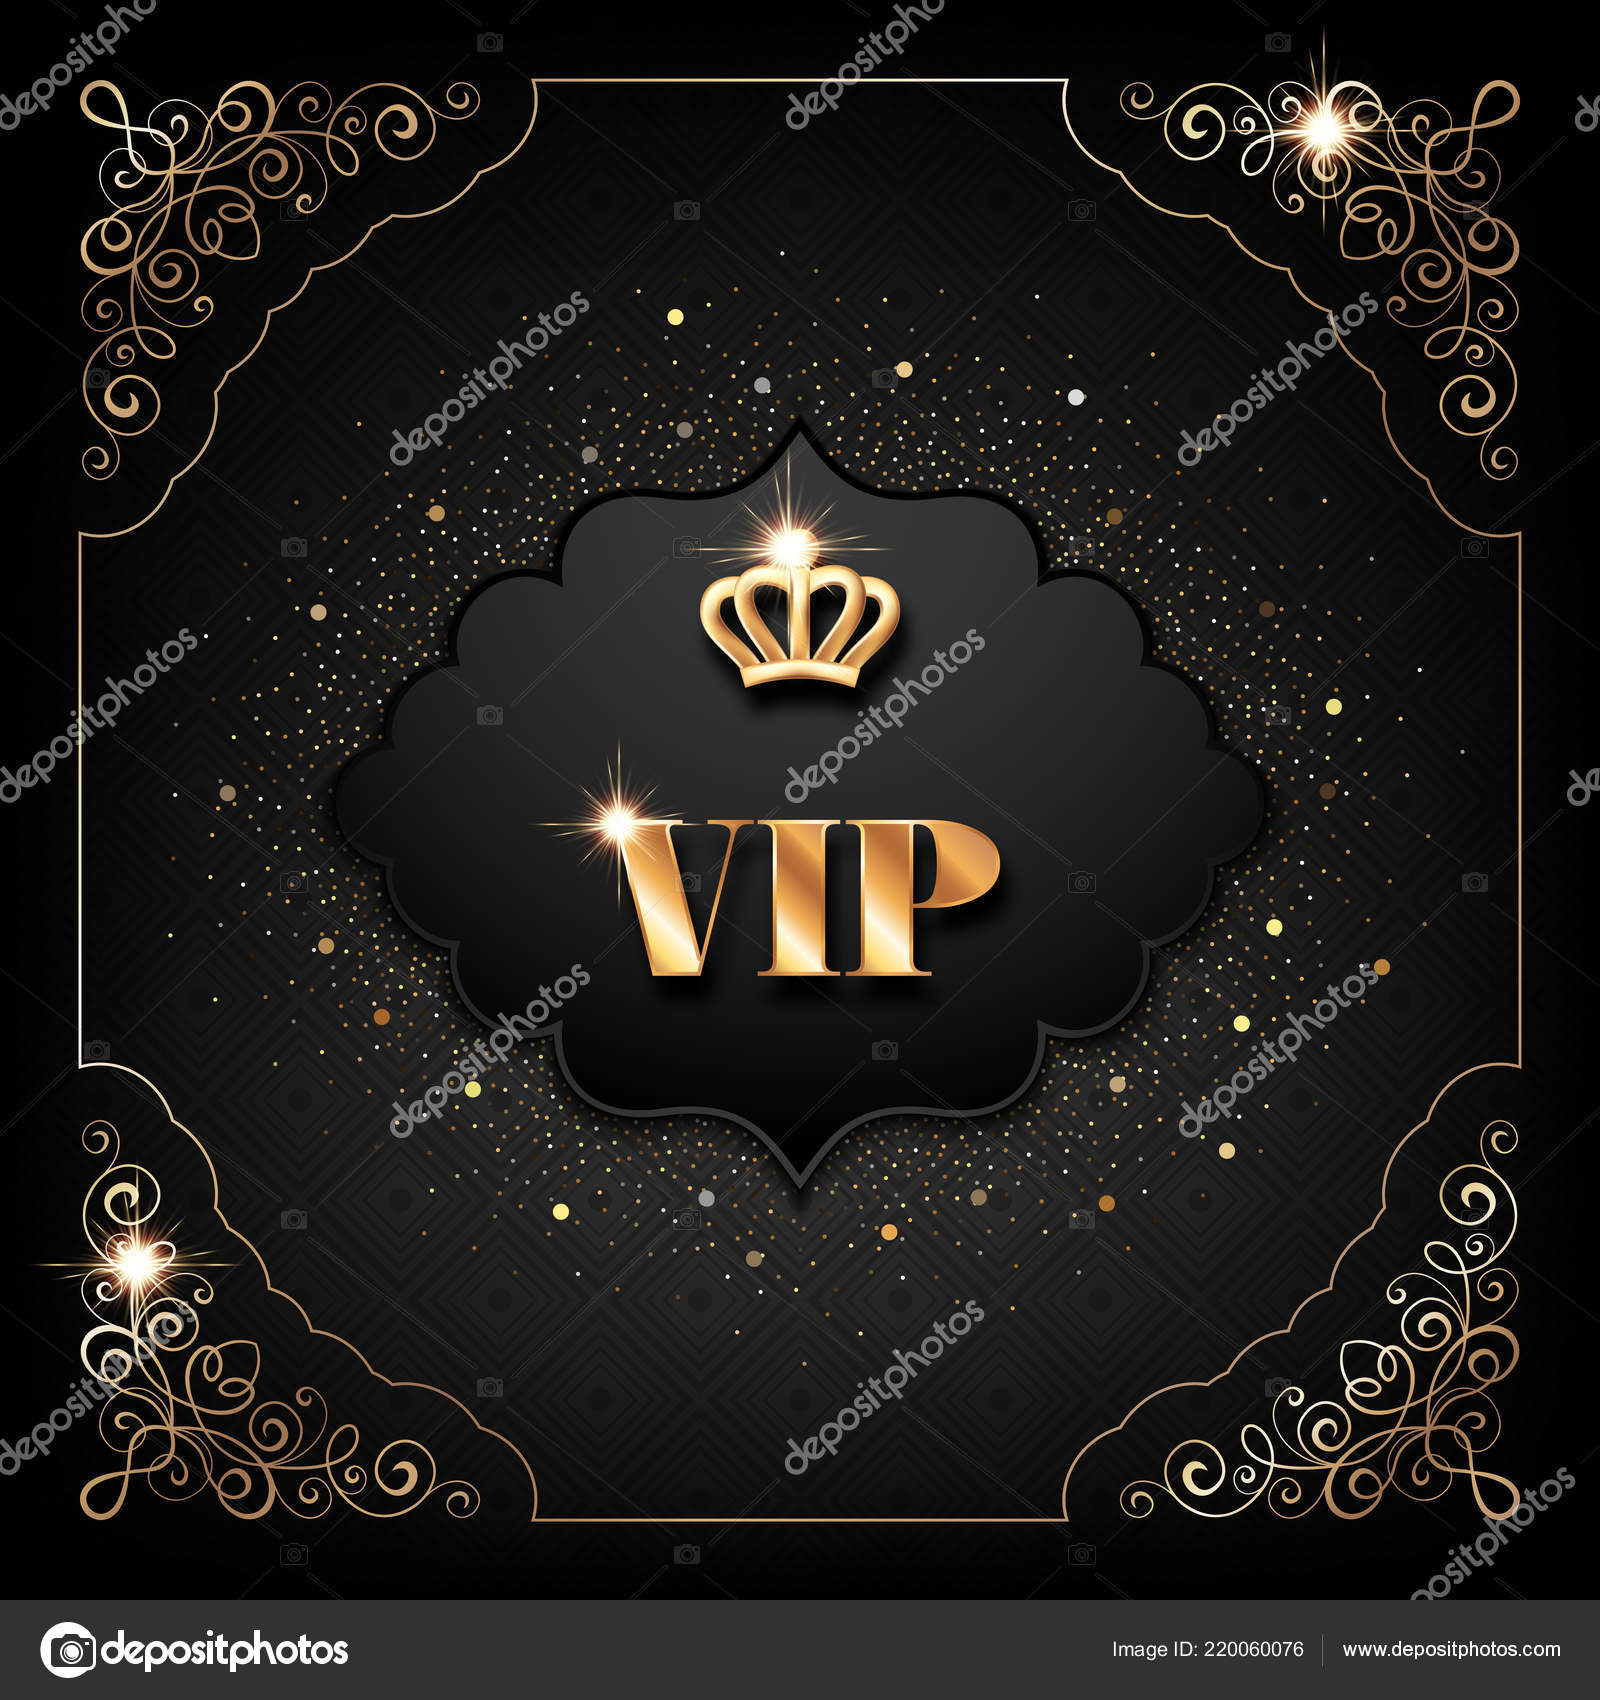 vip invitation template golden crown decorative corners sparkling